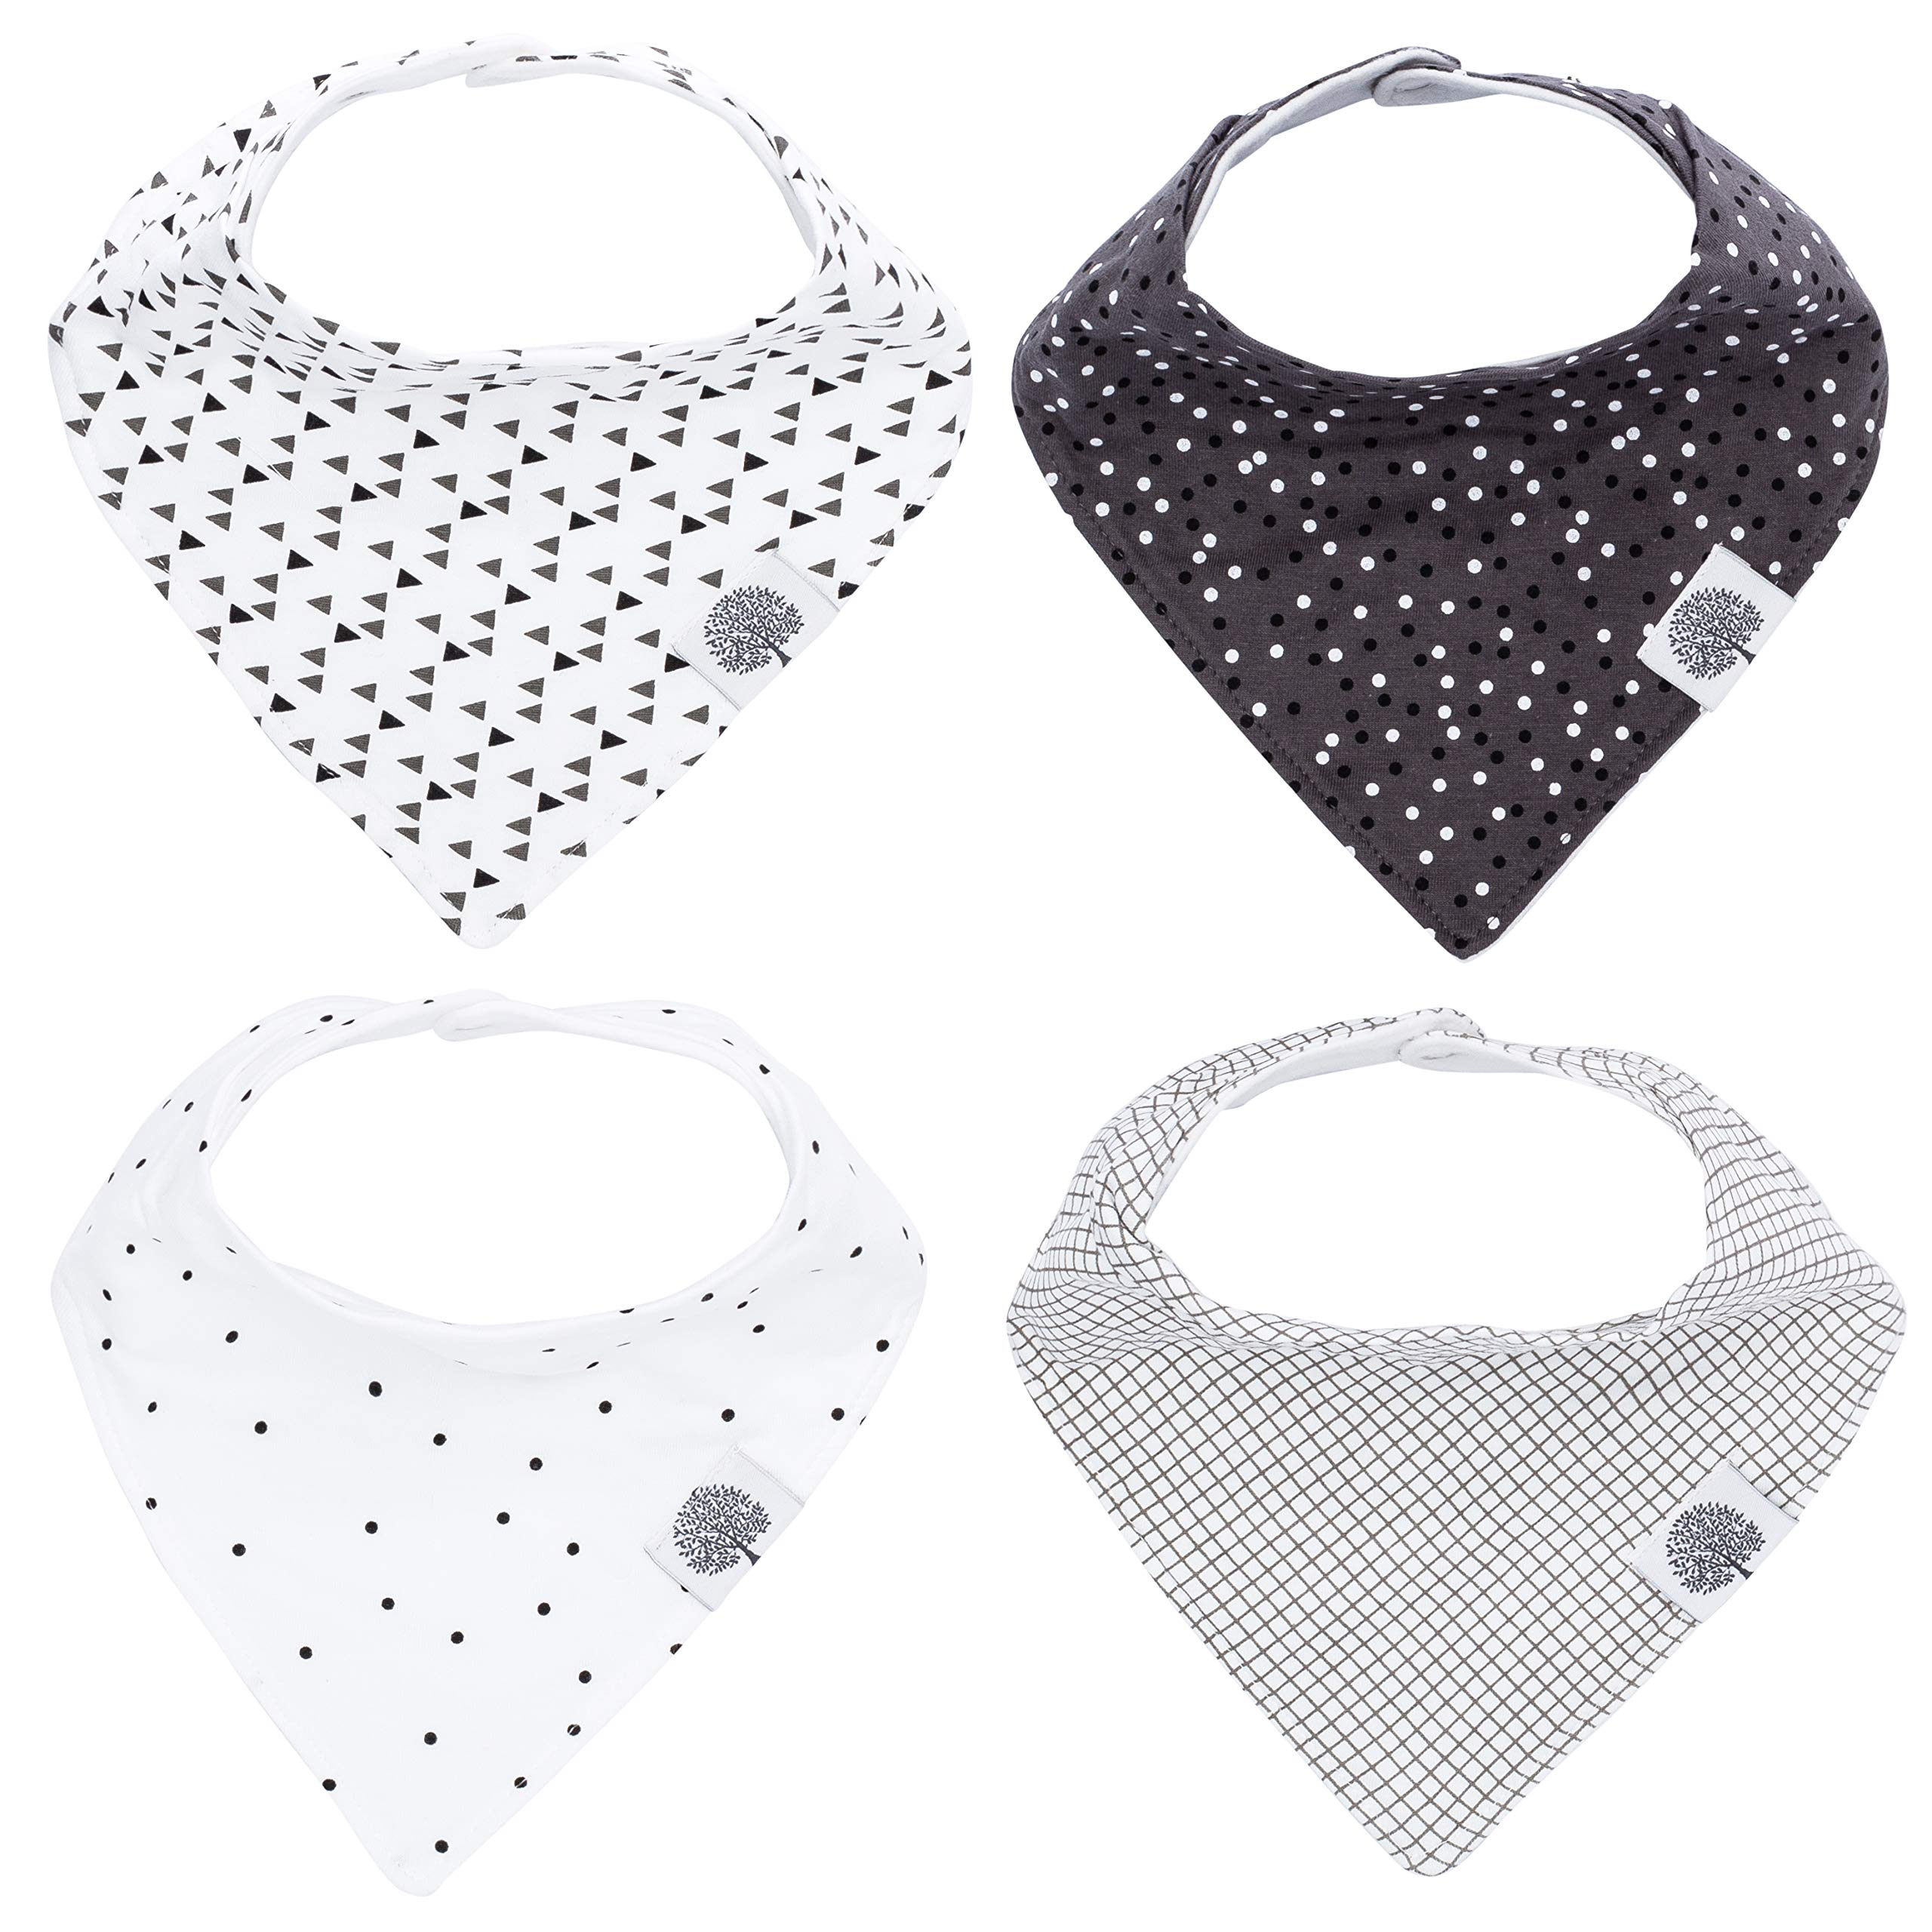 a745c0586e92 Amazon.com  Super Cute Bandana Bib - Best for Drooling and Teething ...